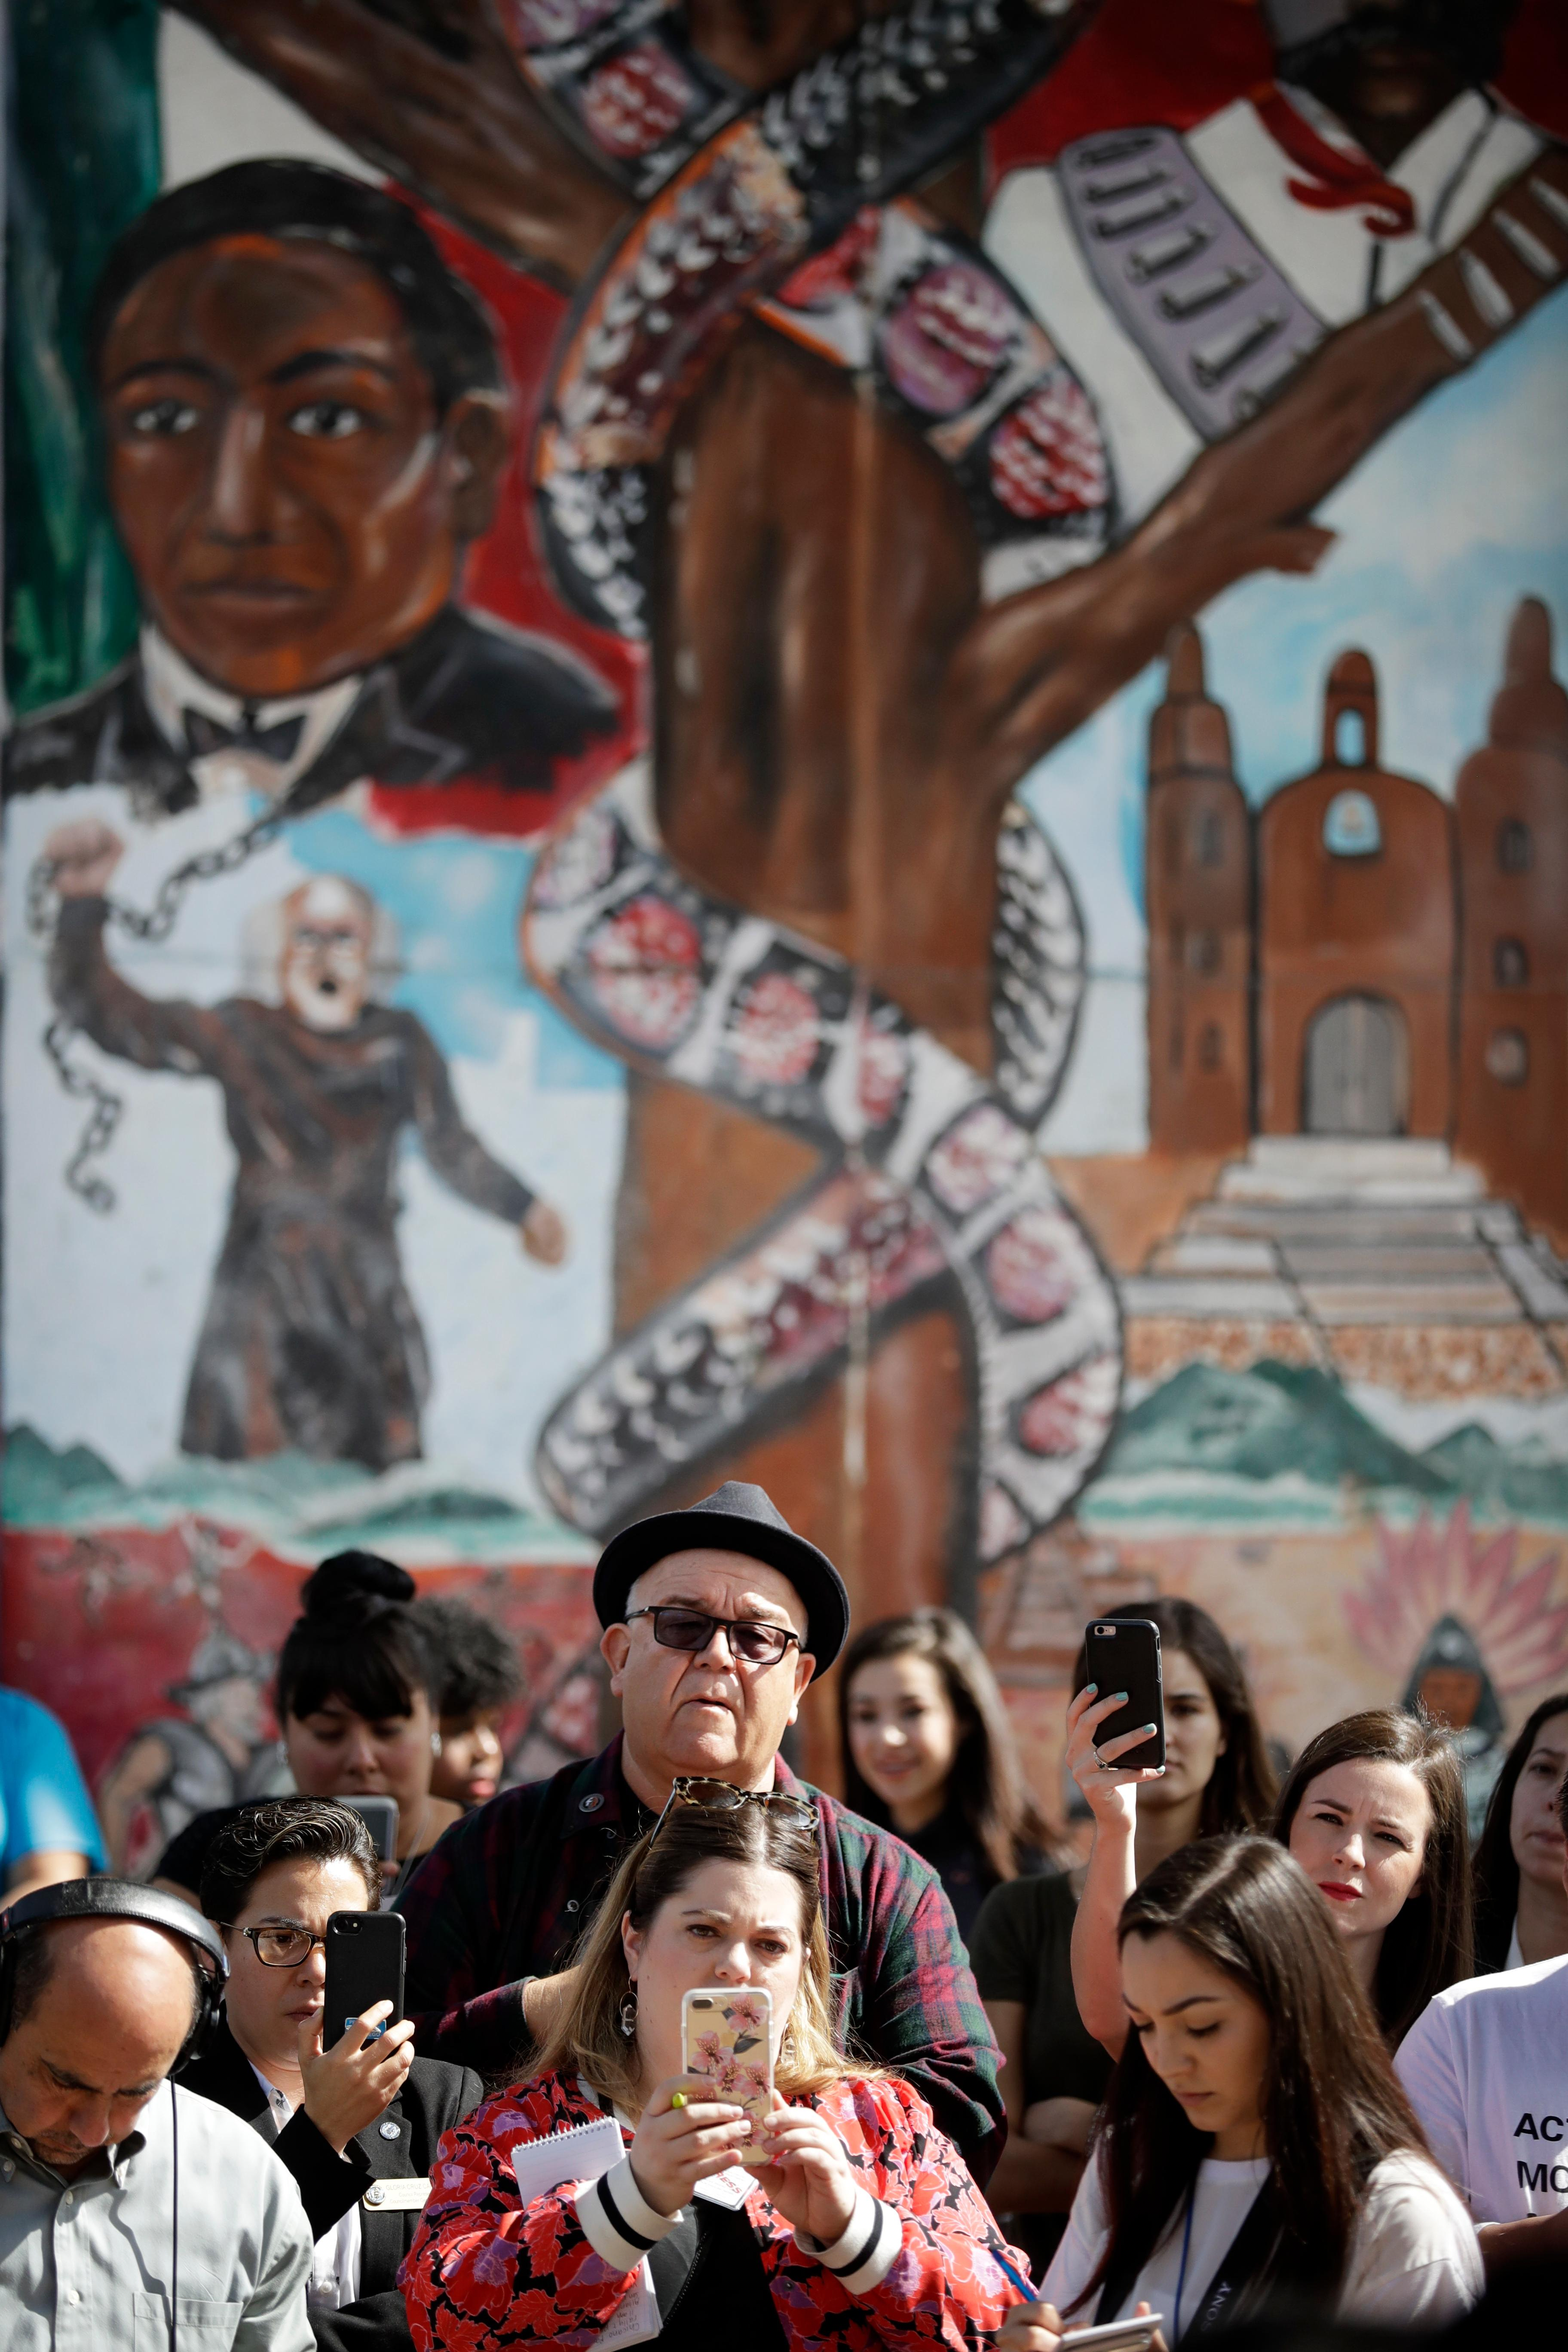 People look on in front of a mural depicting heroes of the Mexican revolution during a rally against a scheduled upcoming visit to the area by President Donald Trump Monday, March 12, 2018, in San Diego. Trump is scheduled to visit San Diego Tuesday, setting foot in California for his first time as president. (AP Photo/Gregory Bull)